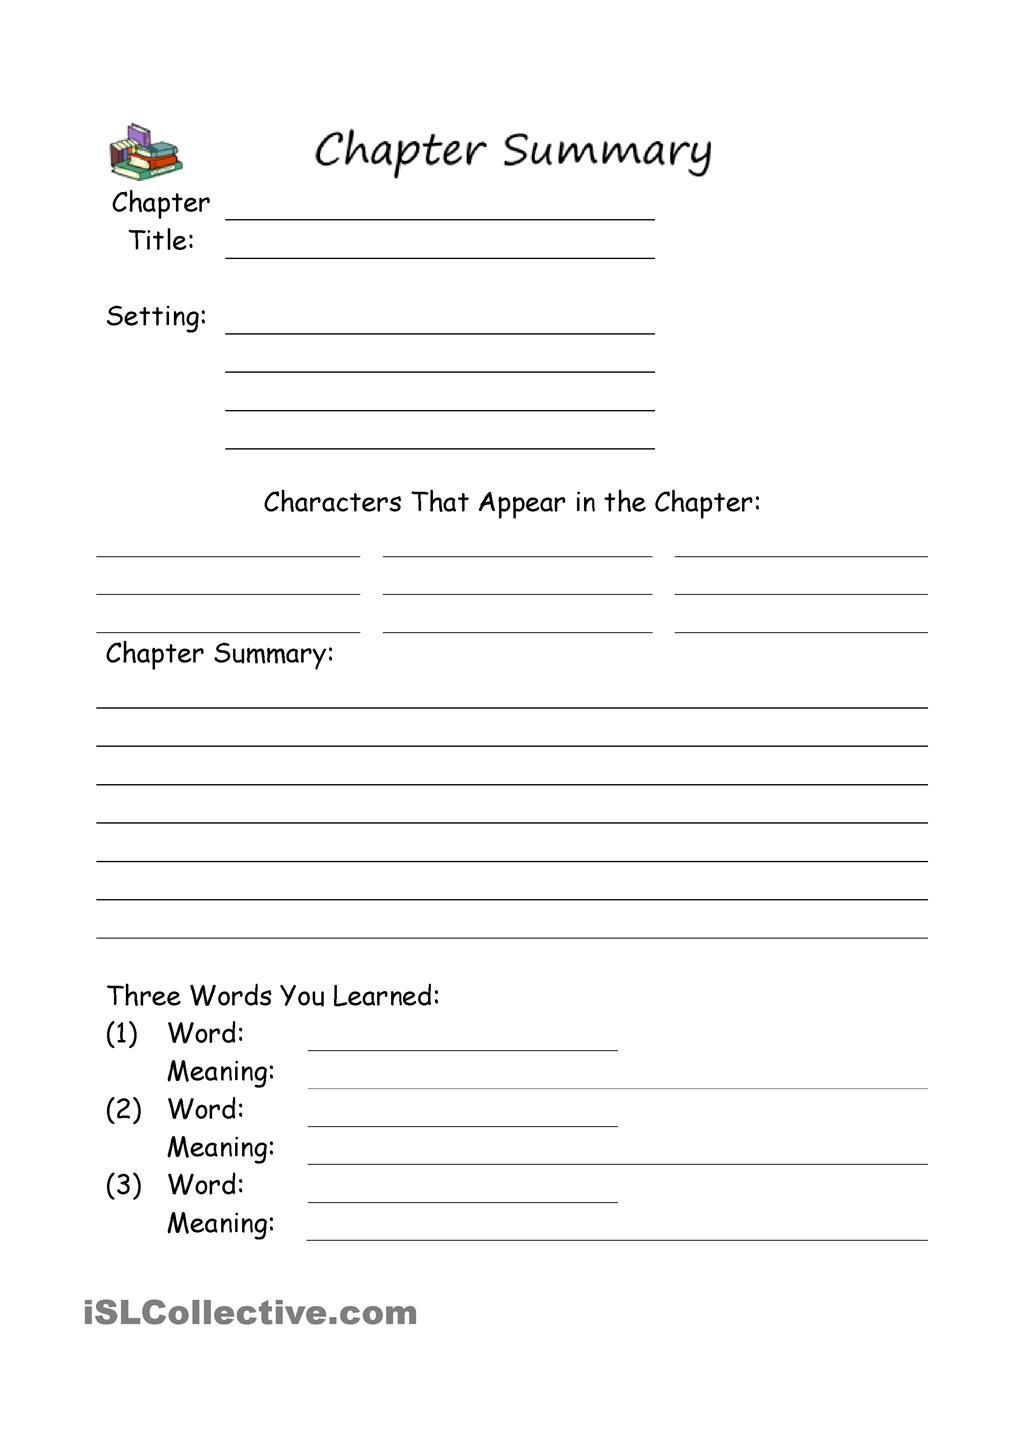 worksheet Chapter Summary Worksheet chapter summary reading projects pinterest school worksheets worksheet free esl printable made by teachers